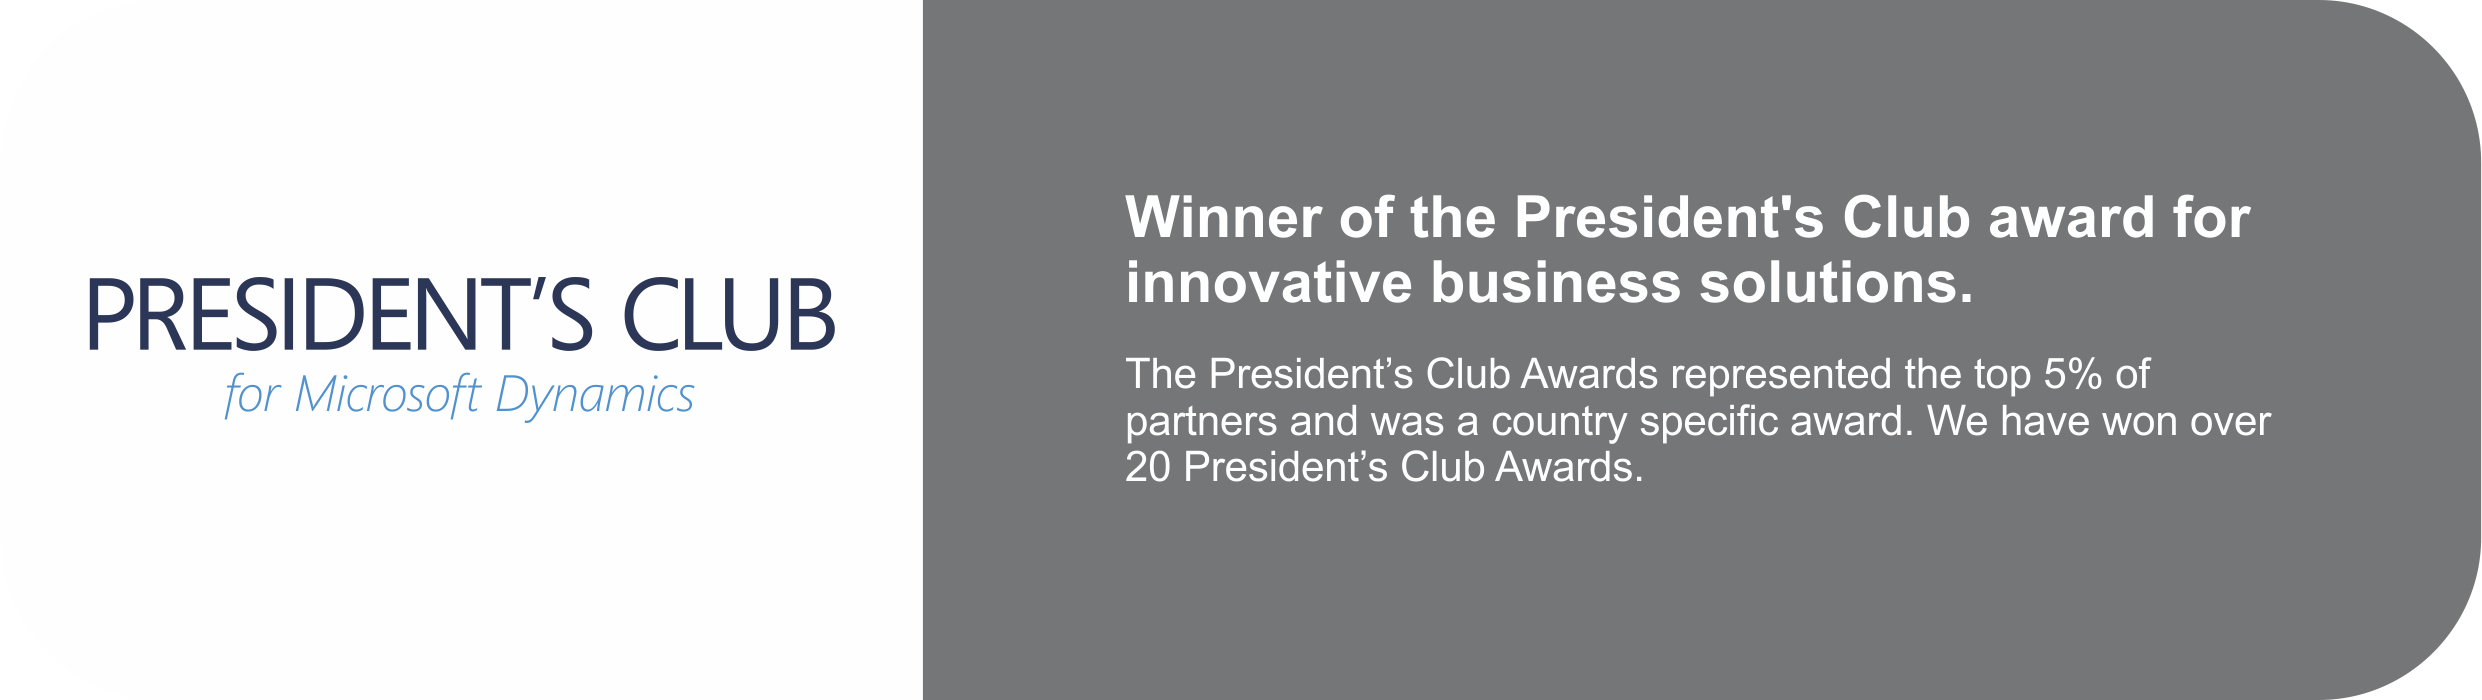 sa.global winner of the President's Club